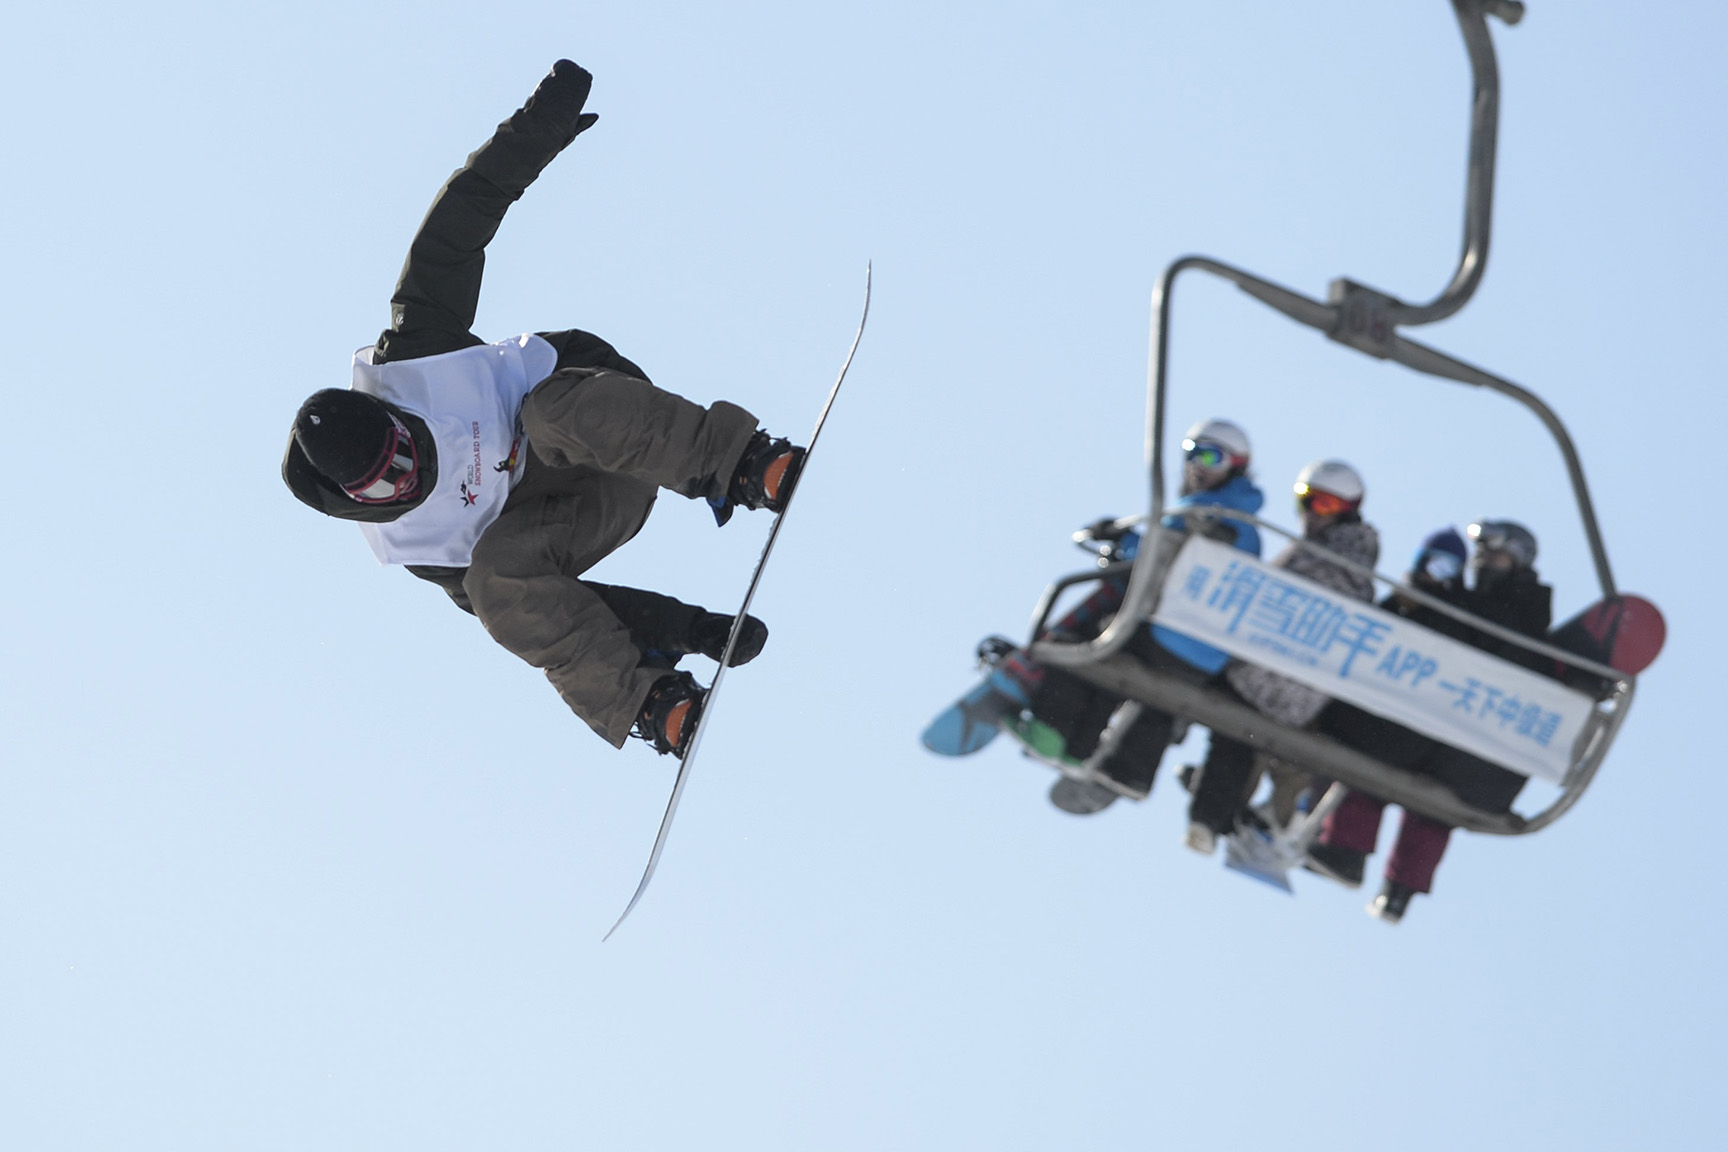 A snowboarding contestant takes a jump during a competition in Beijing